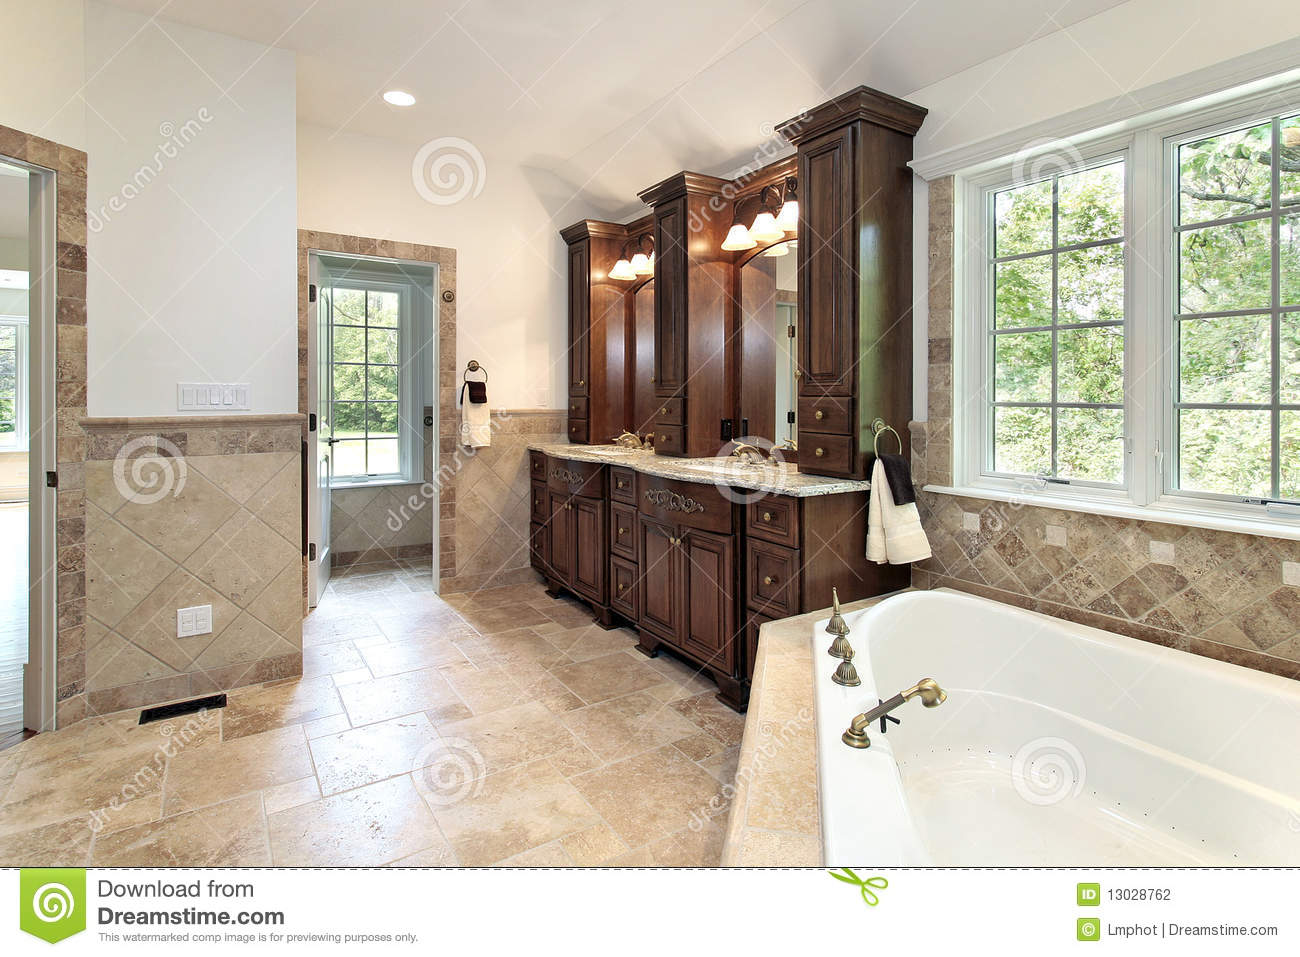 Bathroom Jacuzzi Tub bath jacuzzi tubs - mobroi